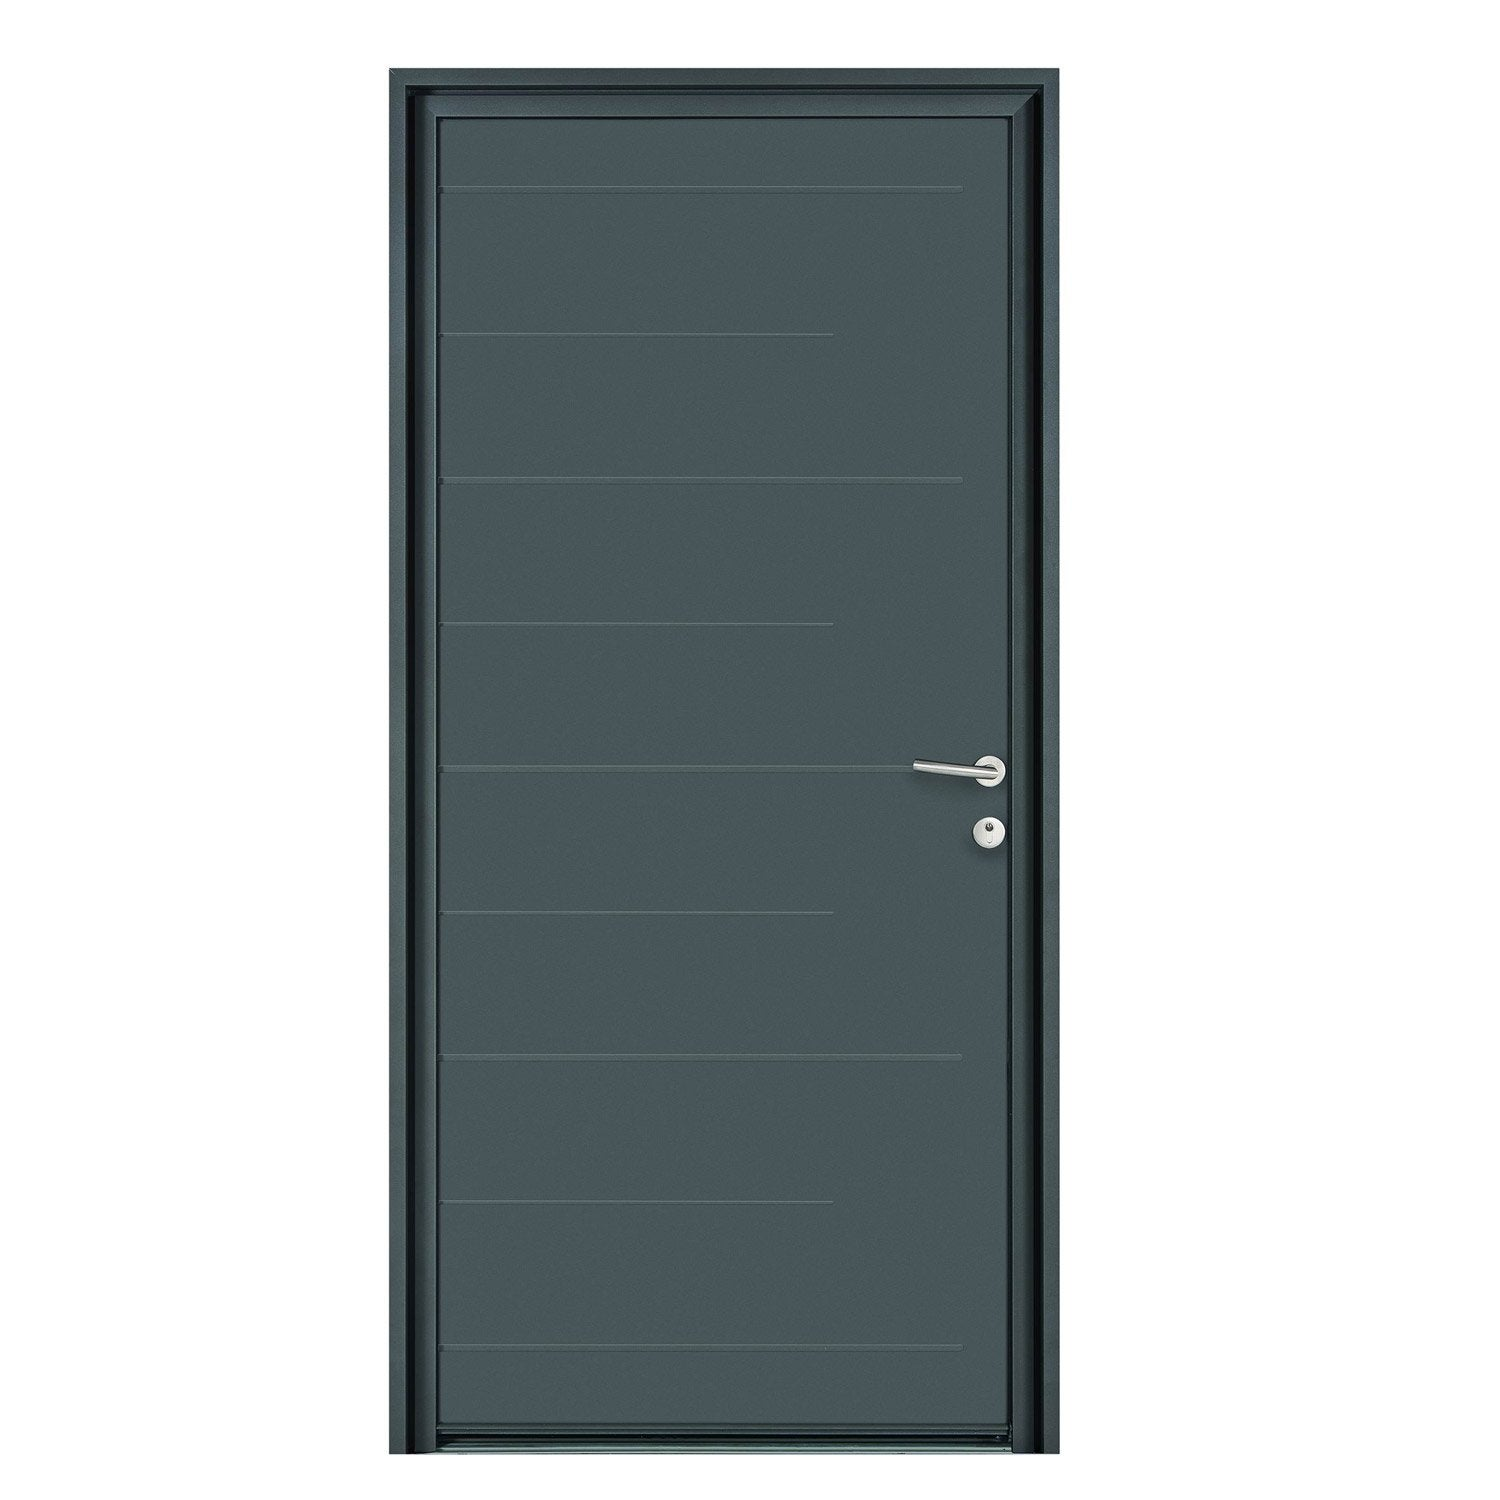 porte western ikea porte battante western 20170705091024 porte pliante ikea porte miroir. Black Bedroom Furniture Sets. Home Design Ideas